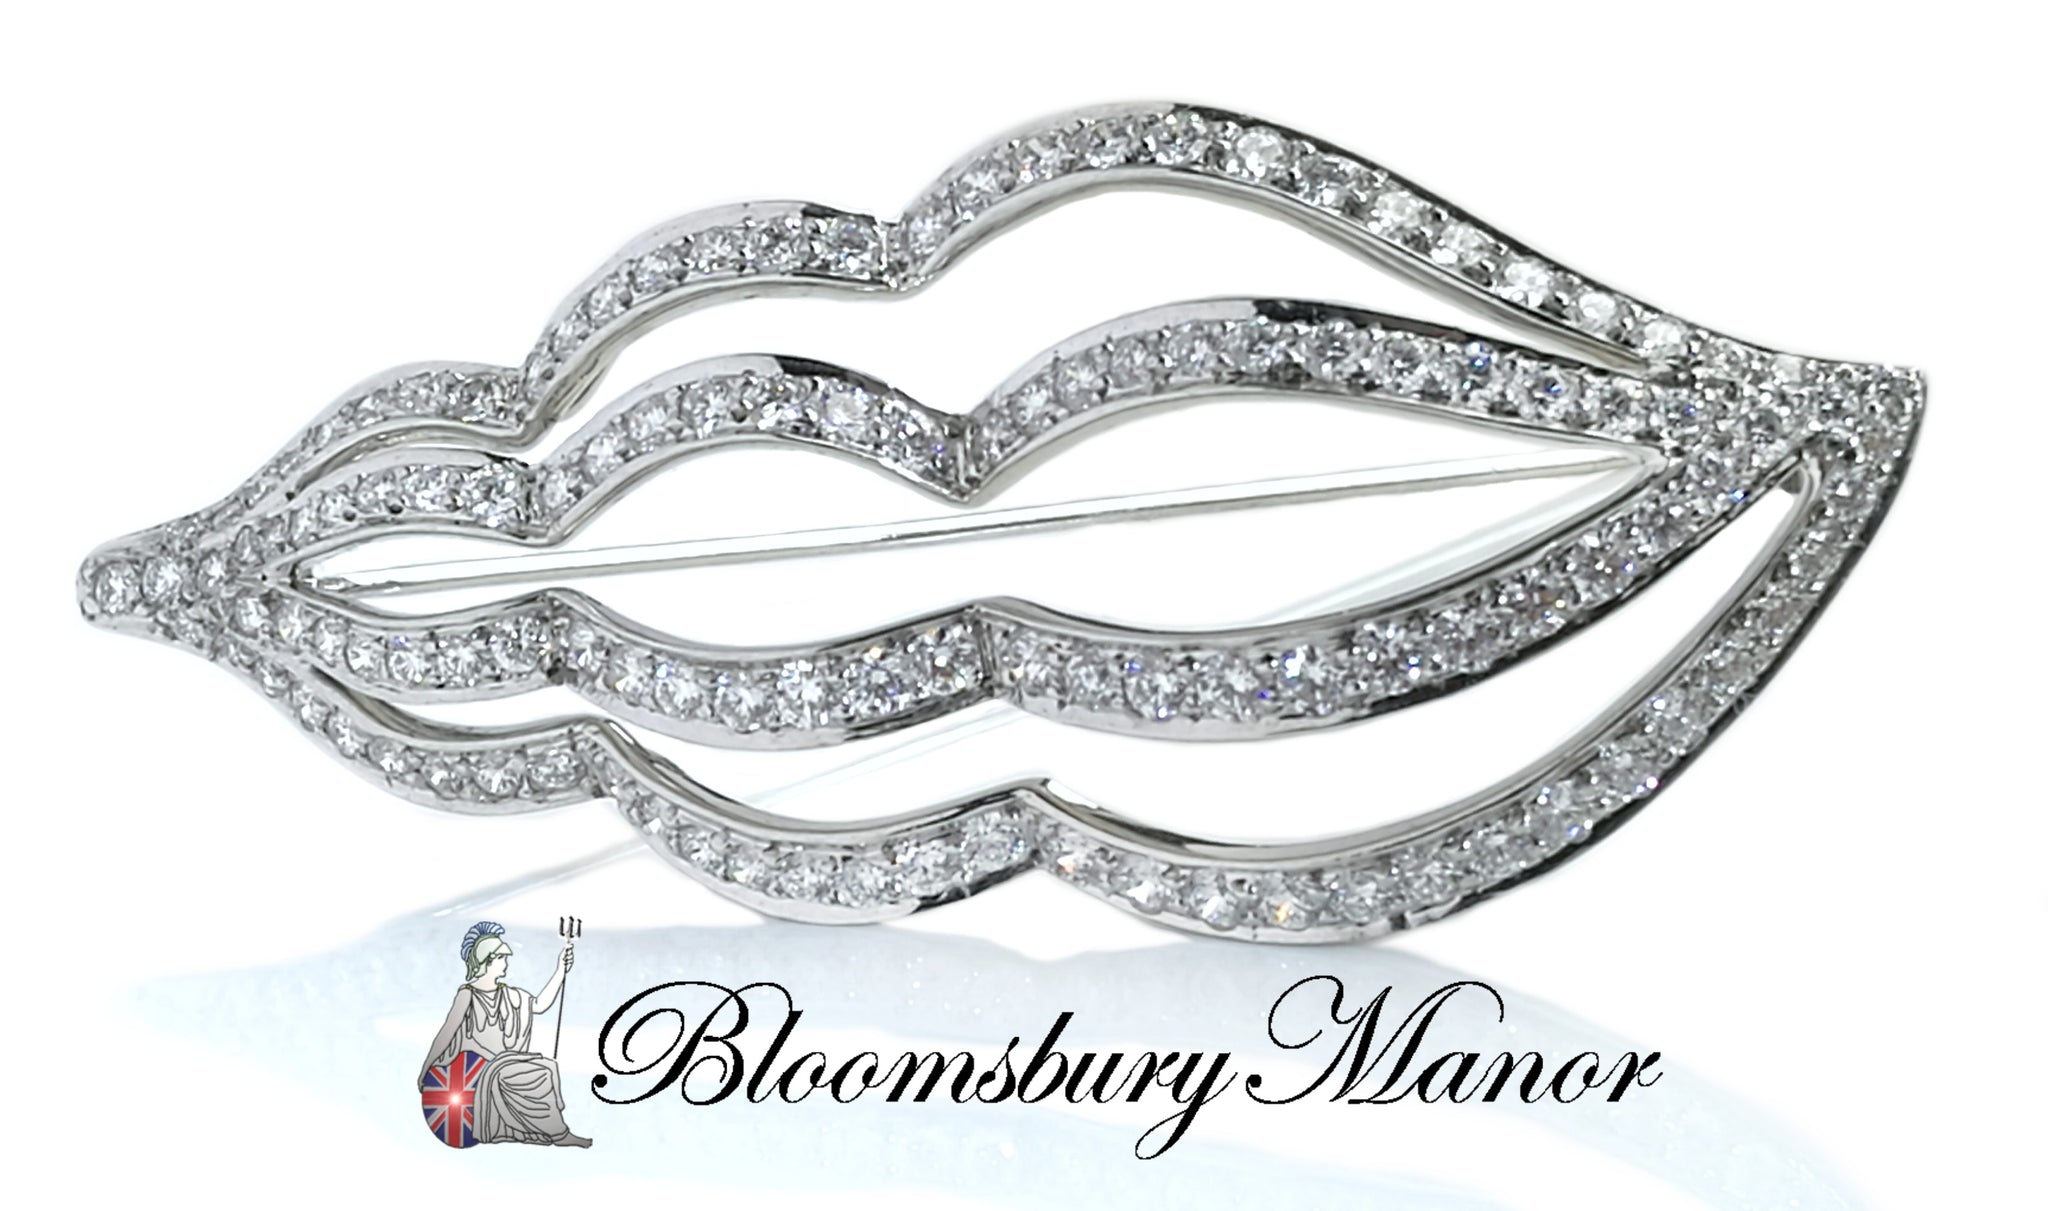 Pre-owned Second Hand Tiffany & Co Whelk Diamond Brooch